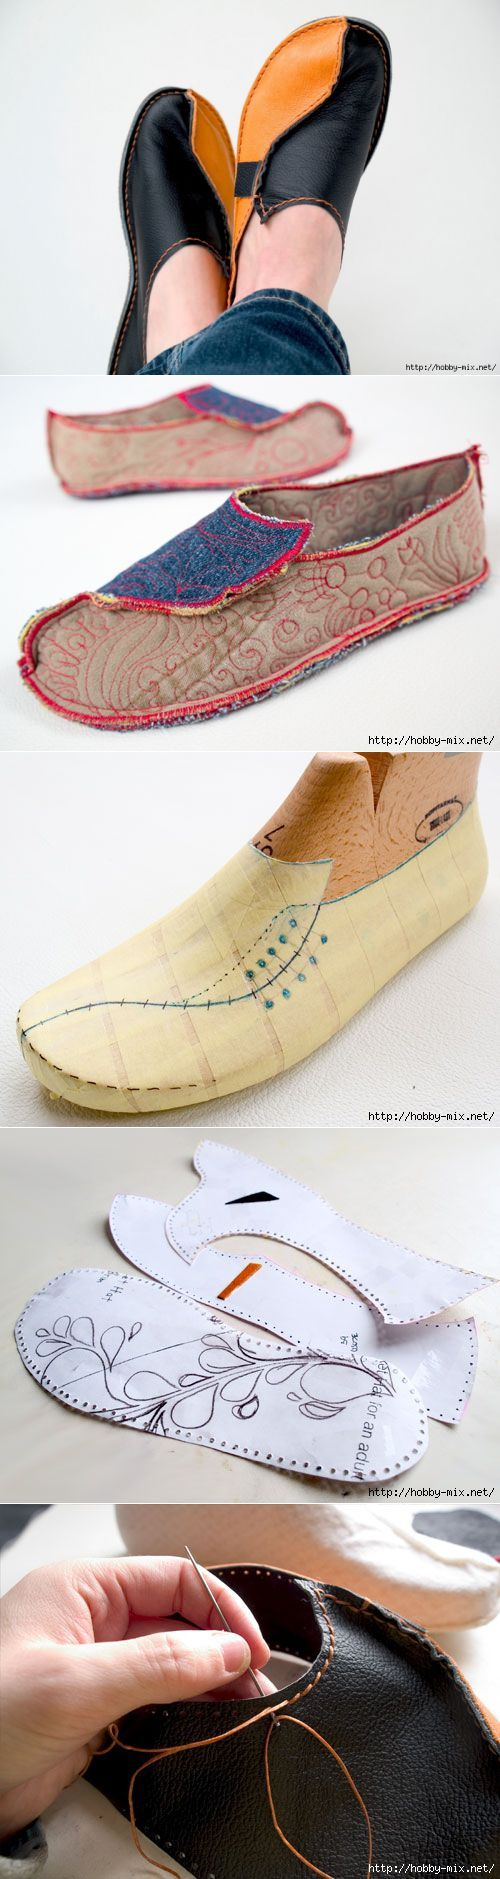 Cool homemade moccasins made of denim or leather. Video MC.